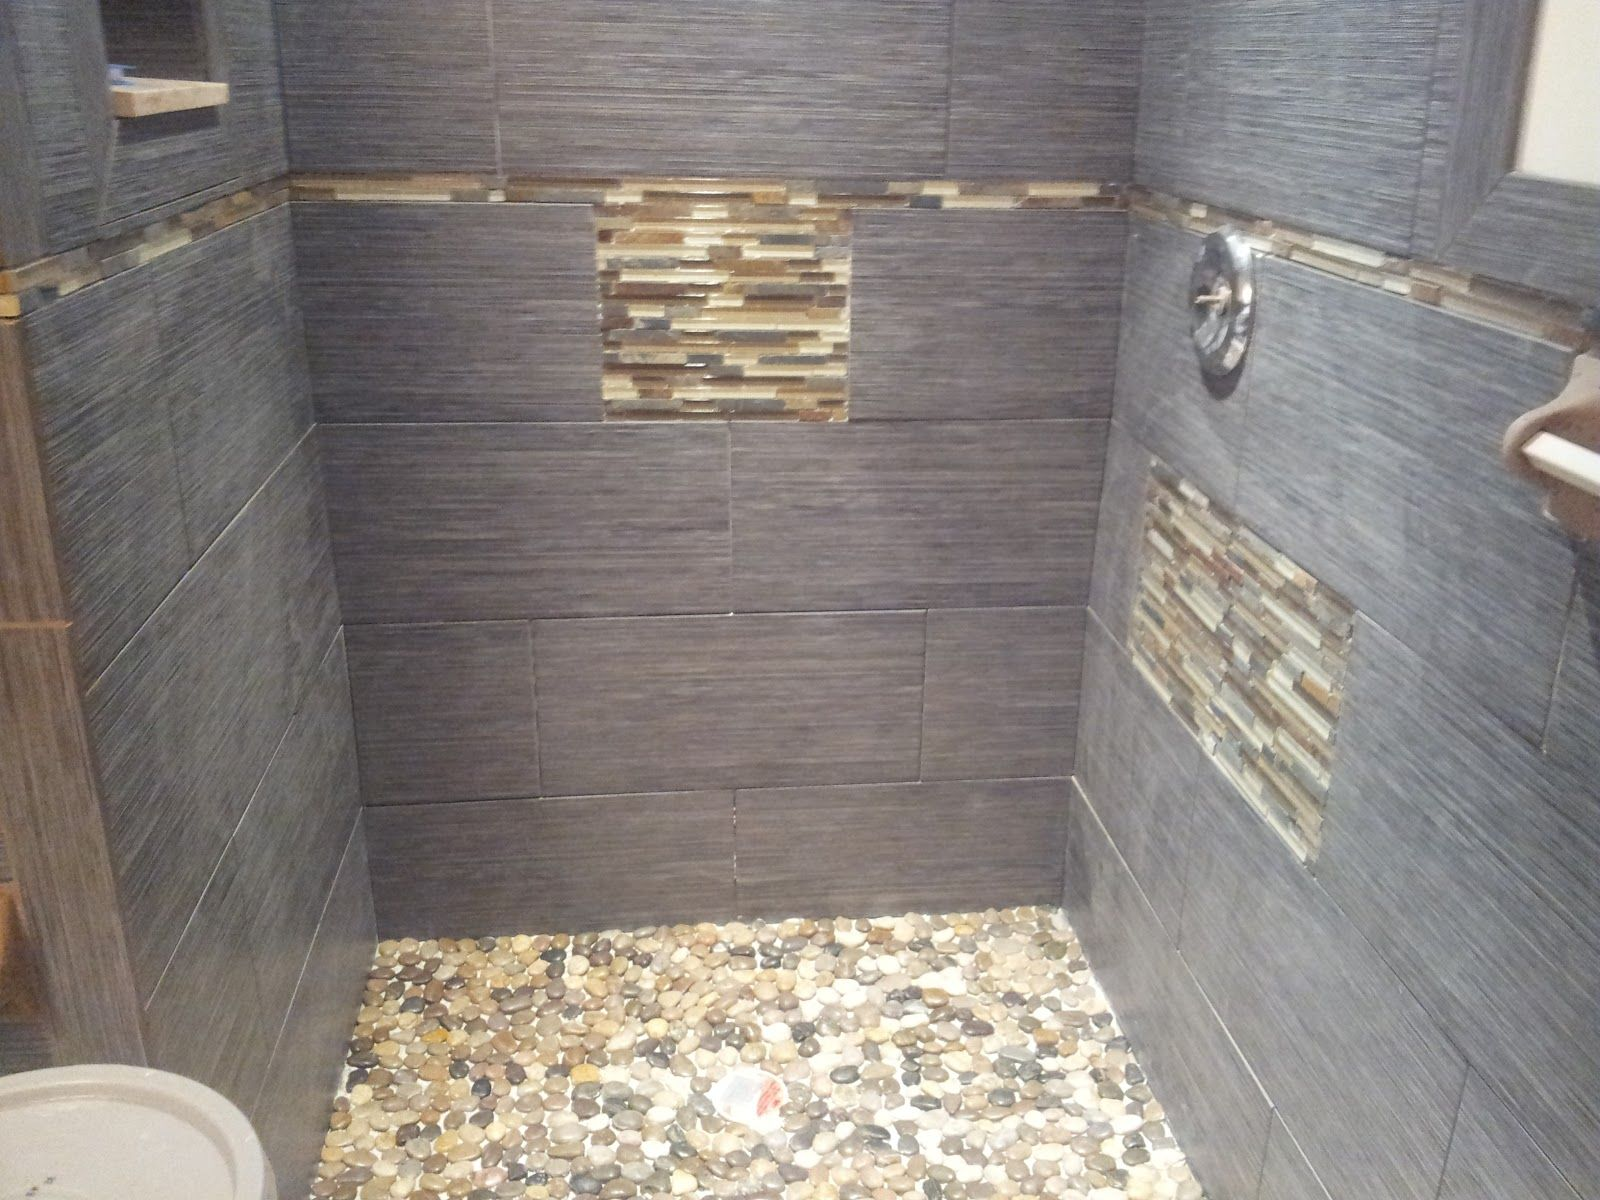 Glass Tile Bathroom Designs Cool Large Format With Linear Mosaic Walls Bathroom Shower Review